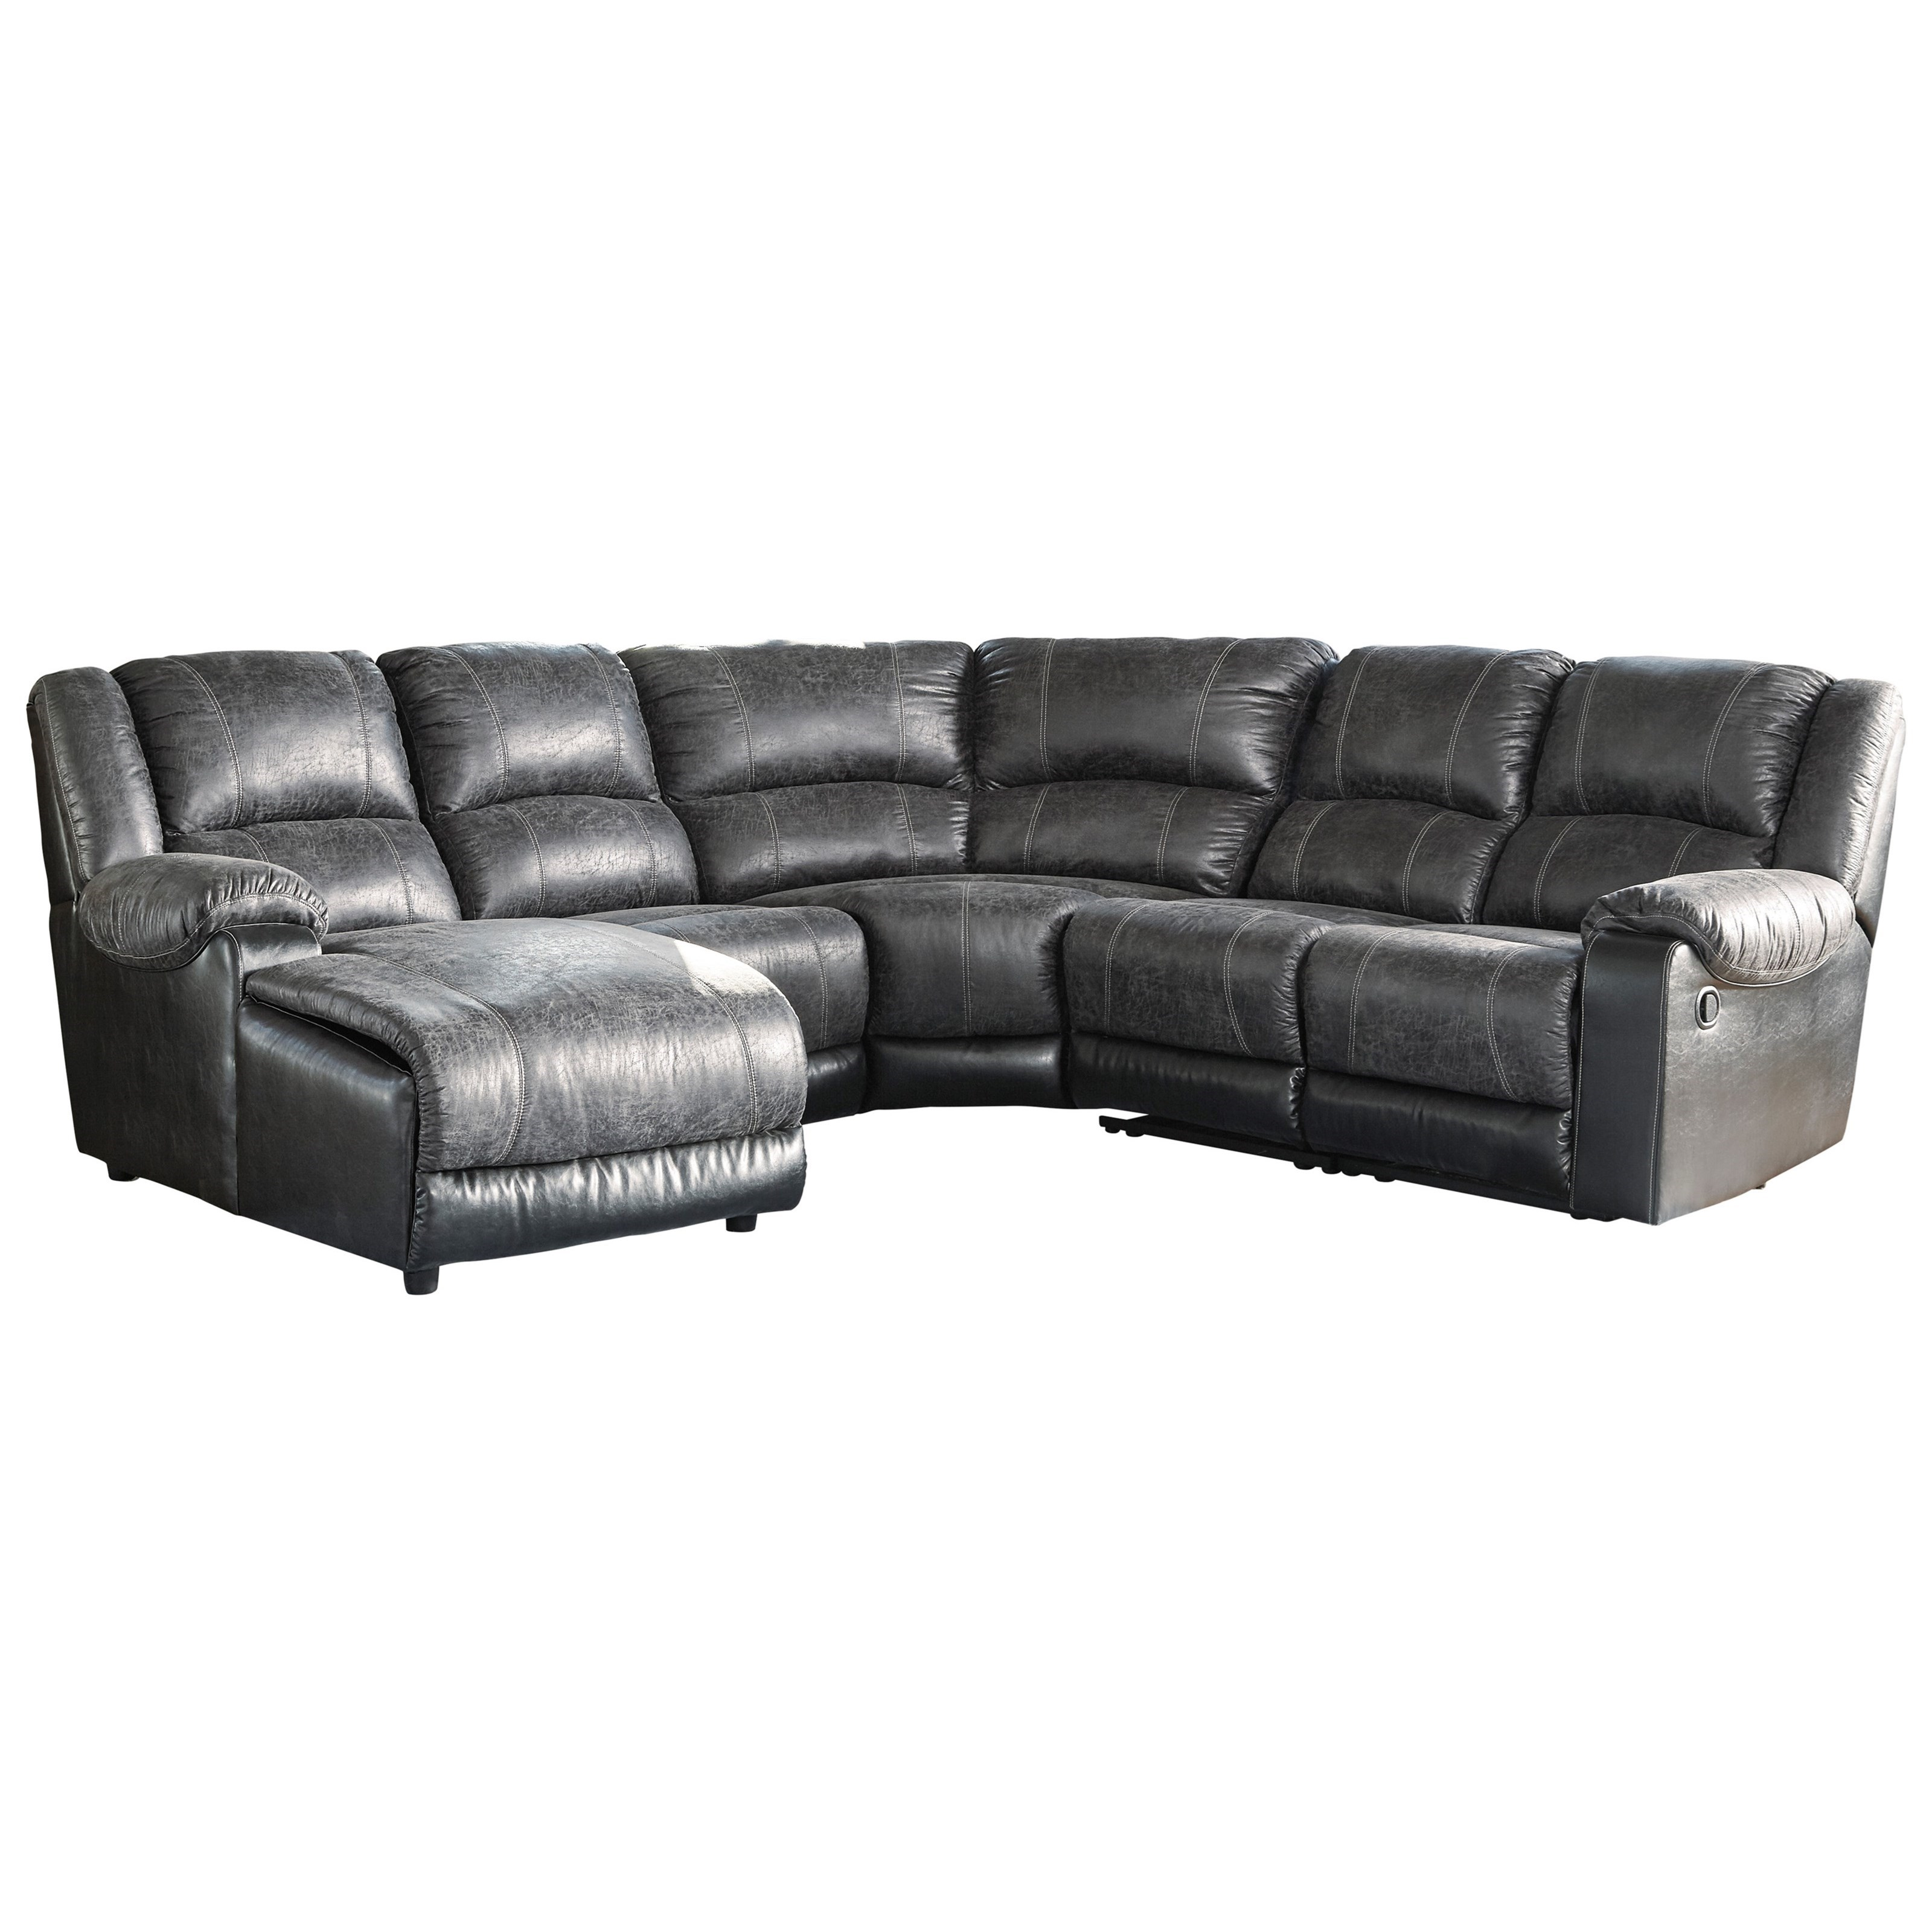 with products sofas utica and chaise chocolate signature leather room sectional recliner reclining store toletta browse ashley binghamton living design sectionals syracuse by